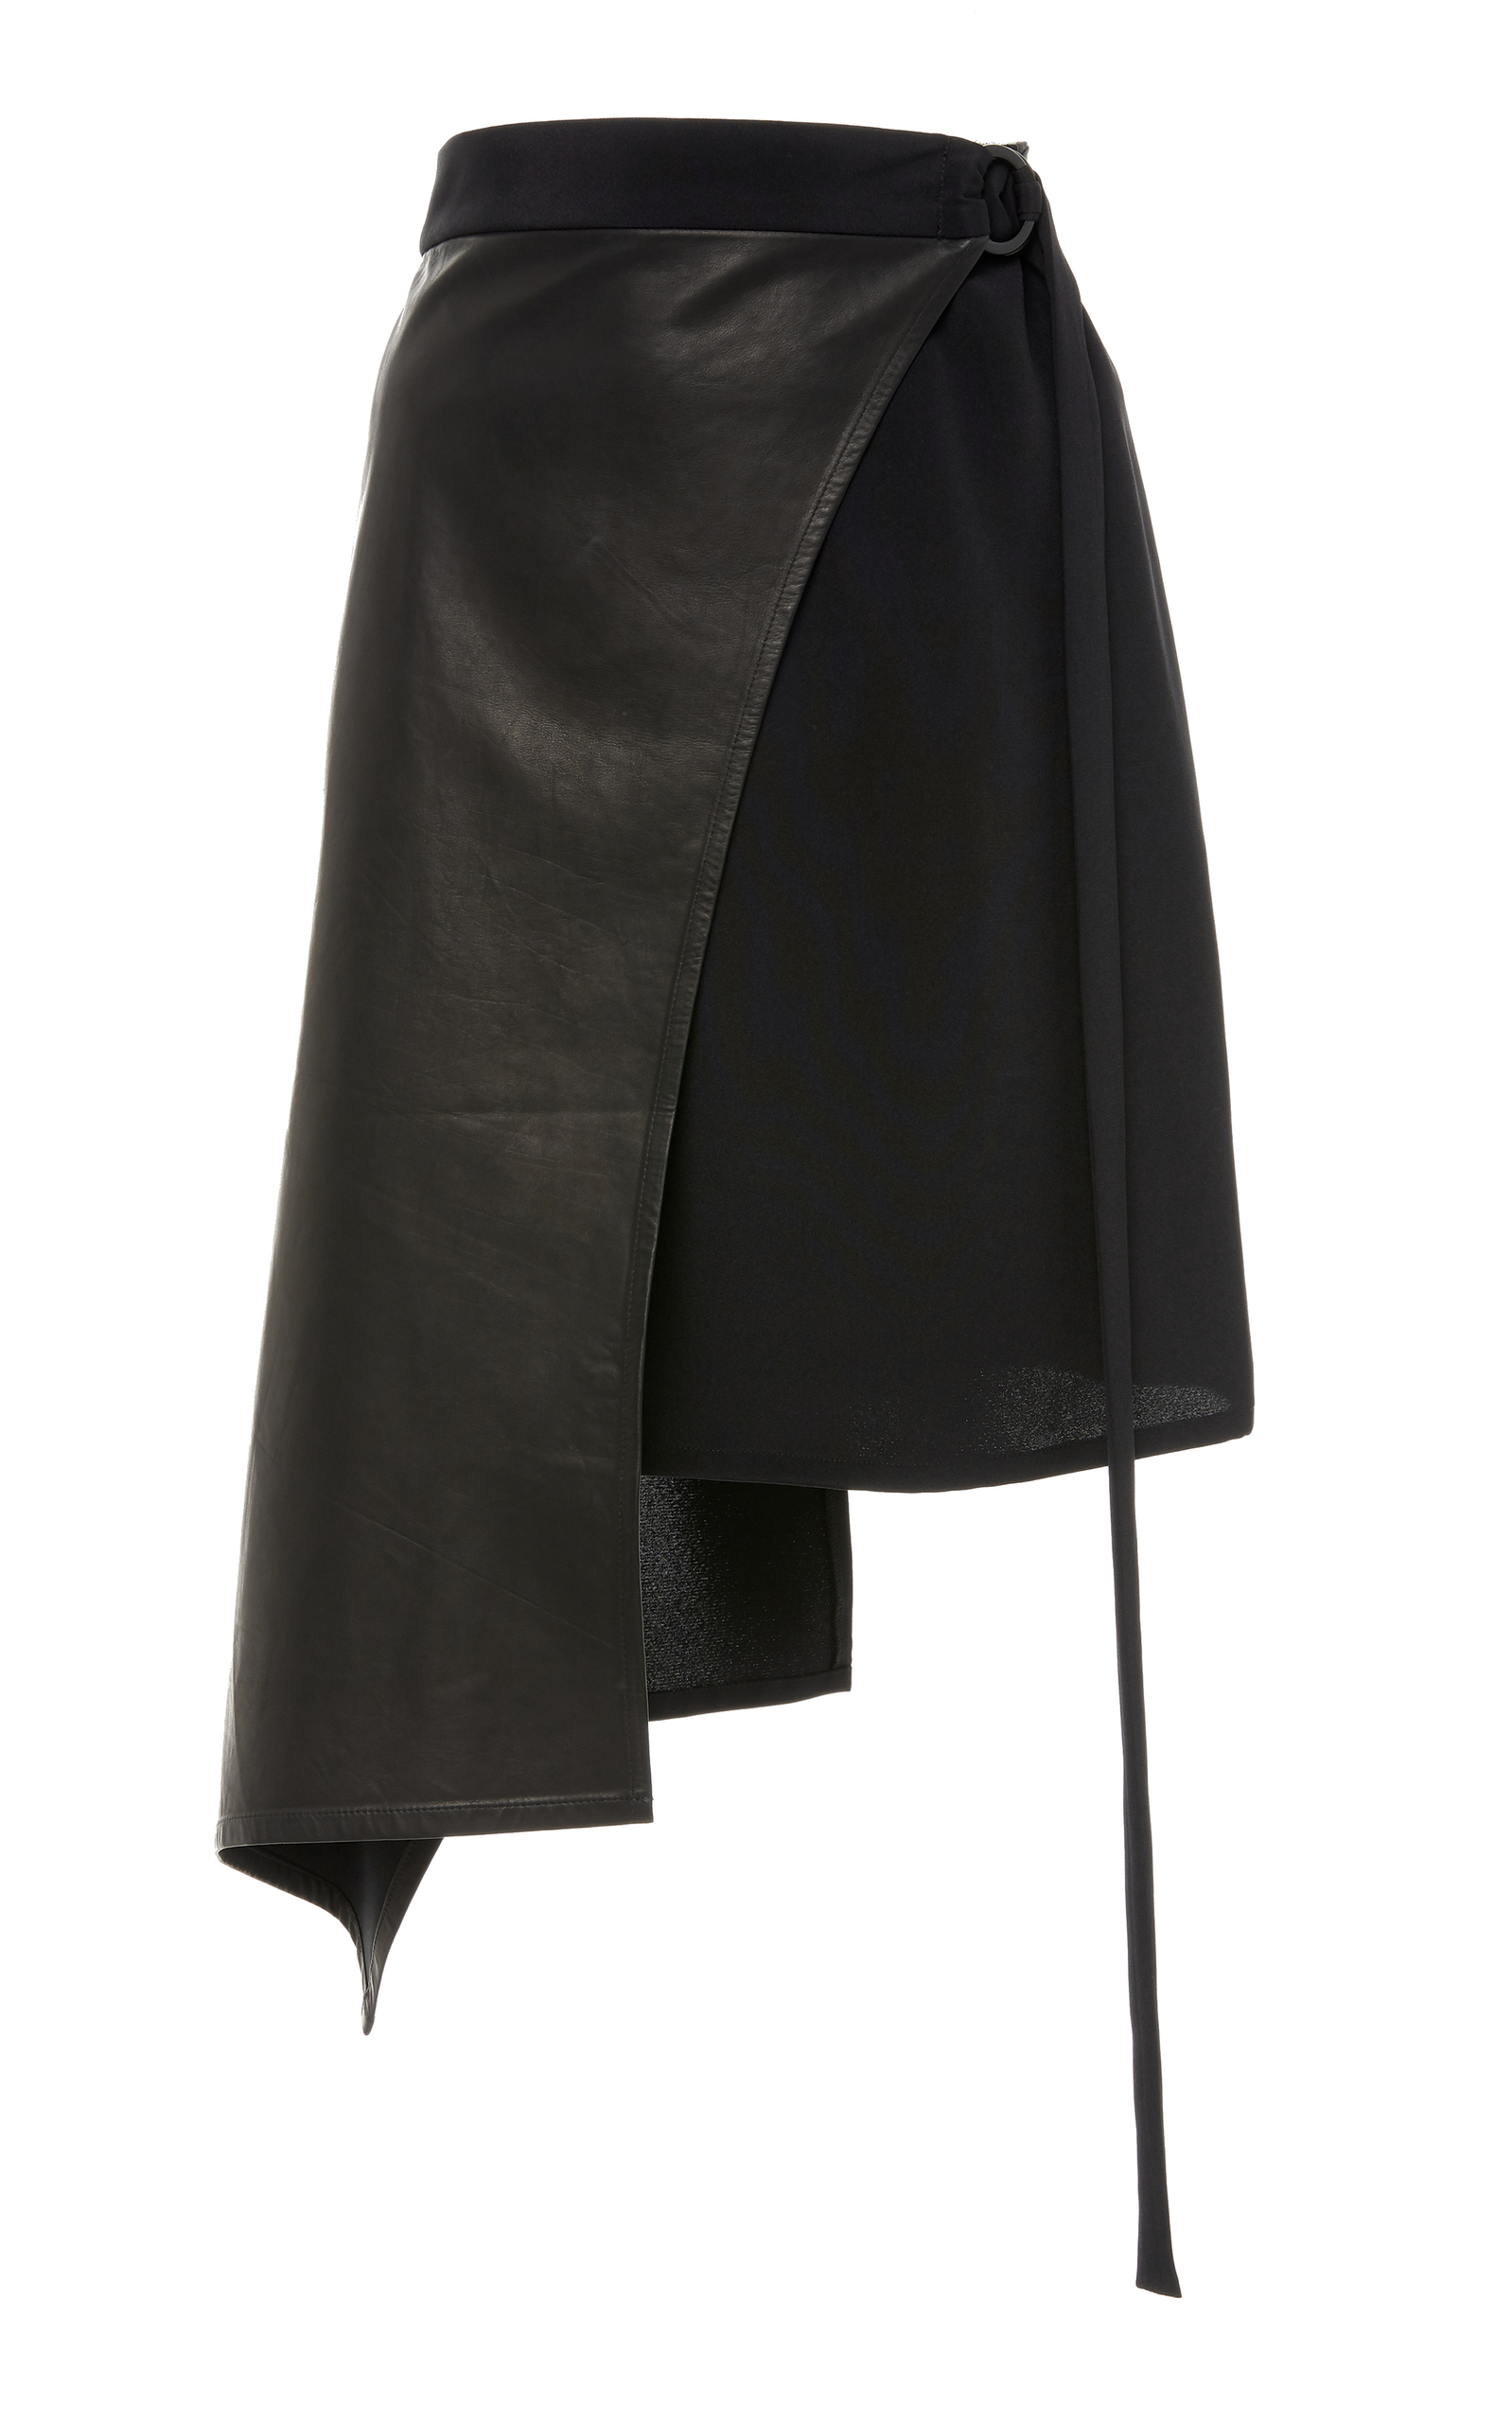 WENDELBORN Short Curve Wrap Skirt in Black